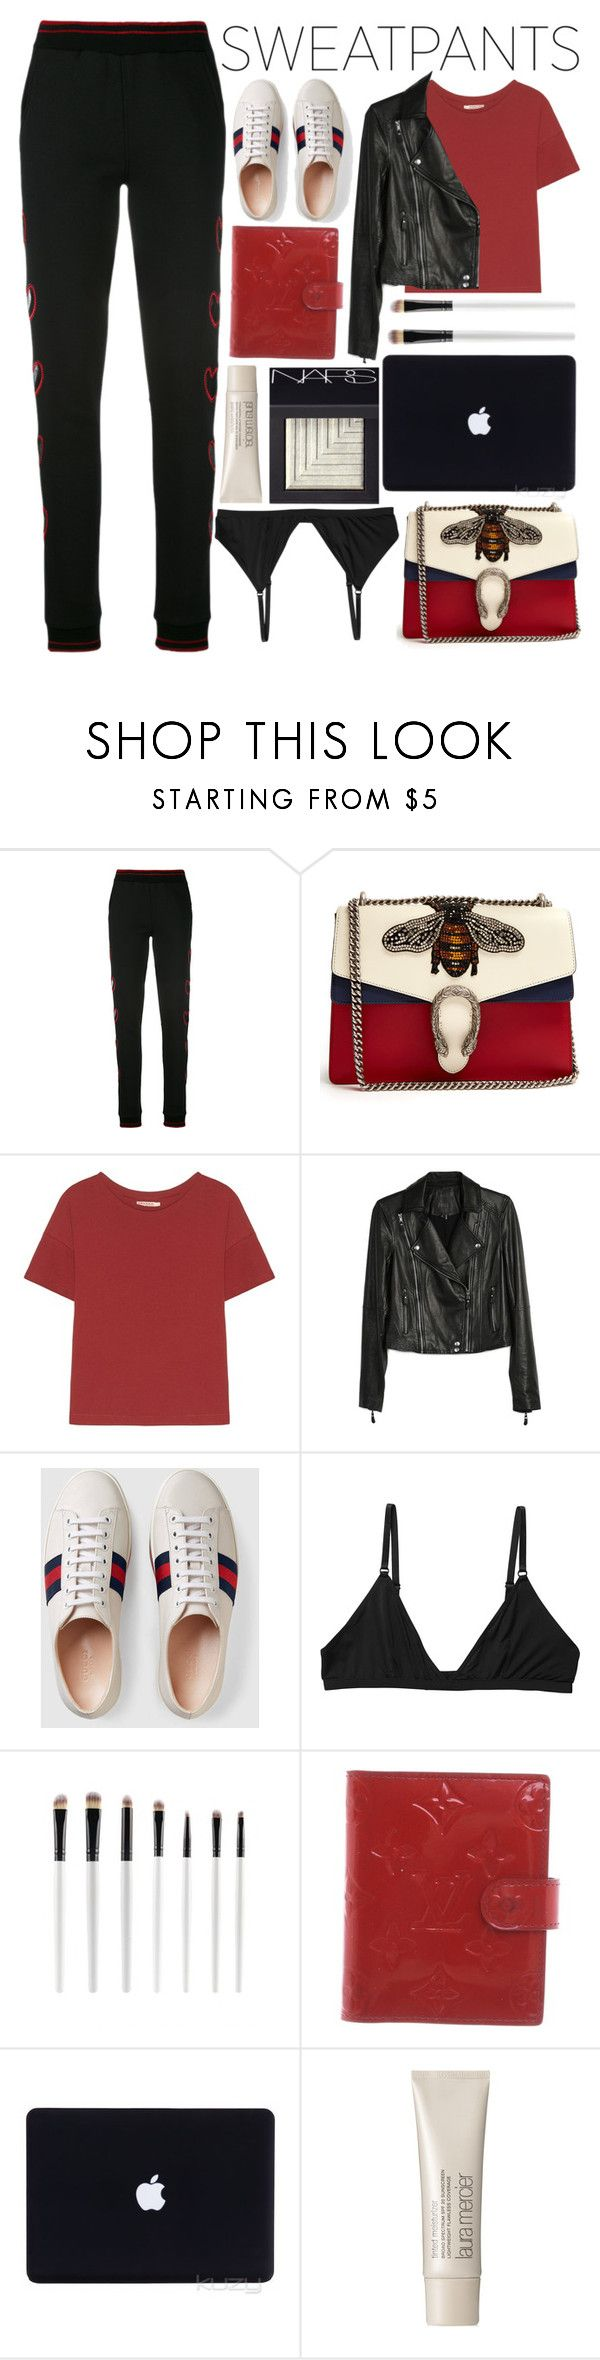 """Sweatpants / 221"" by dddawn ❤ liked on Polyvore featuring Philipp Plein, Gucci, Paige Denim, Monki, Louis Vuitton, Laura Mercier and NARS Cosmetics"